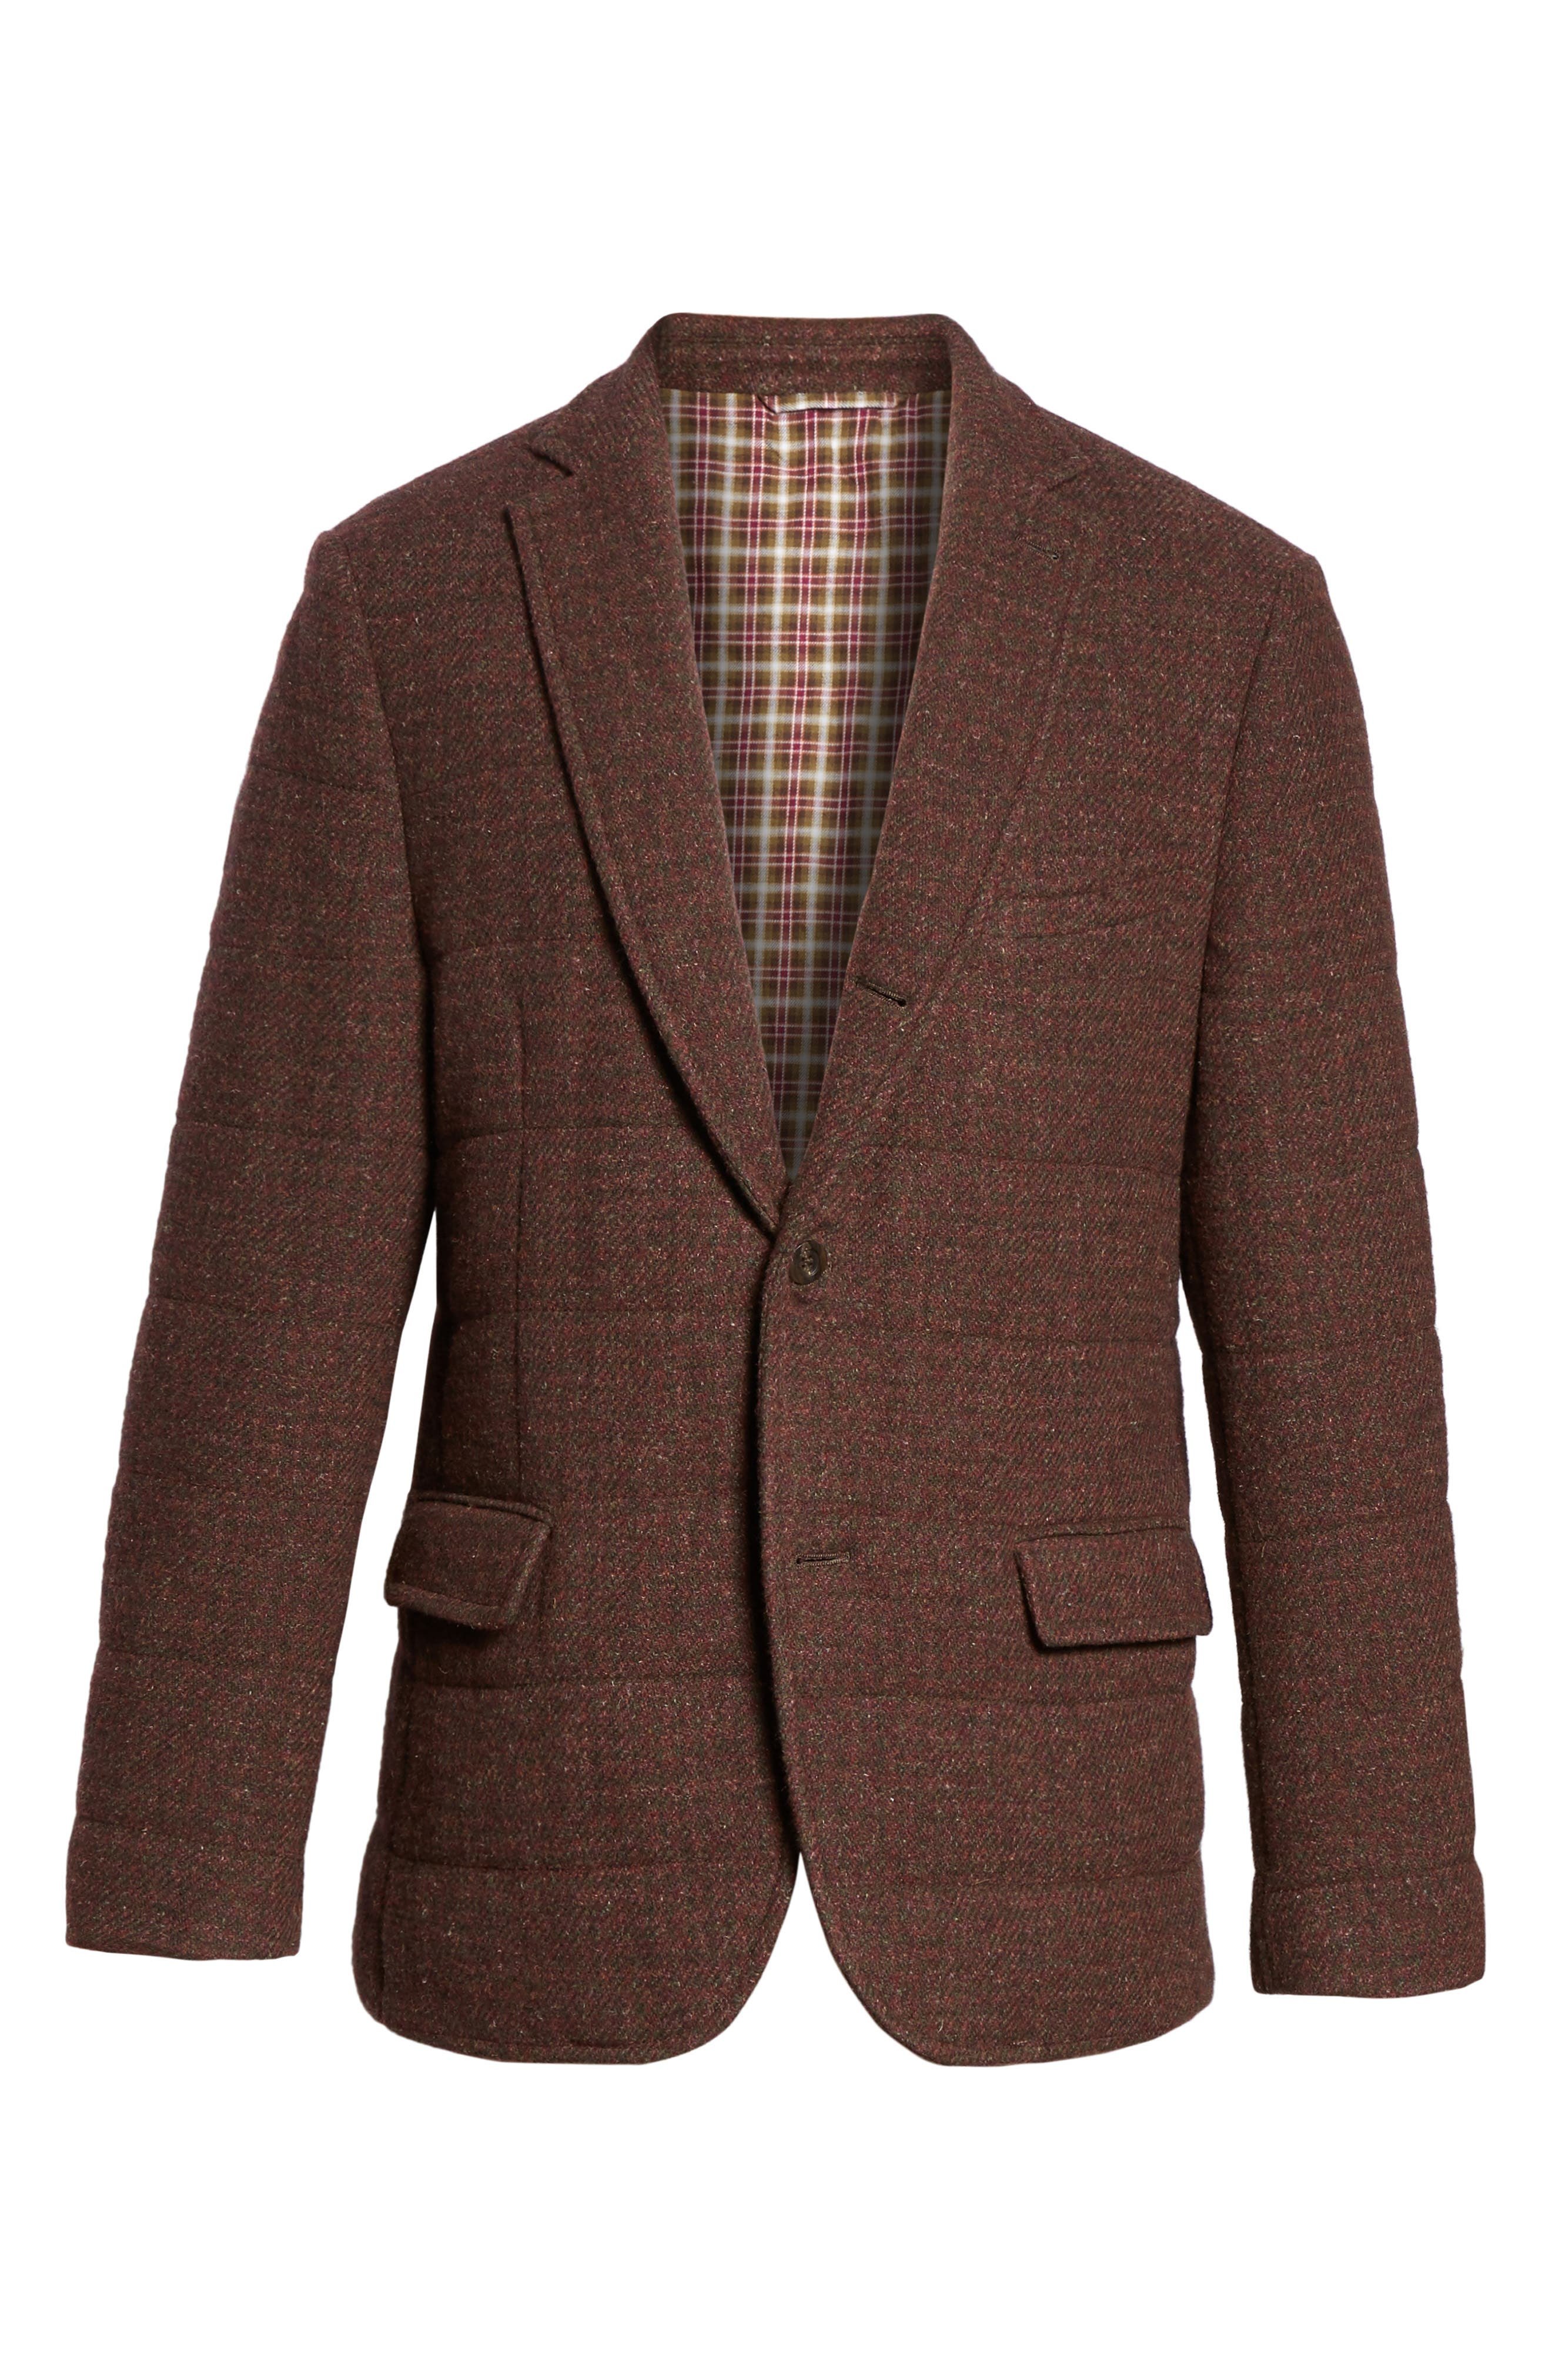 Quilted Wool Blend Hybrid Coat,                             Alternate thumbnail 5, color,                             220